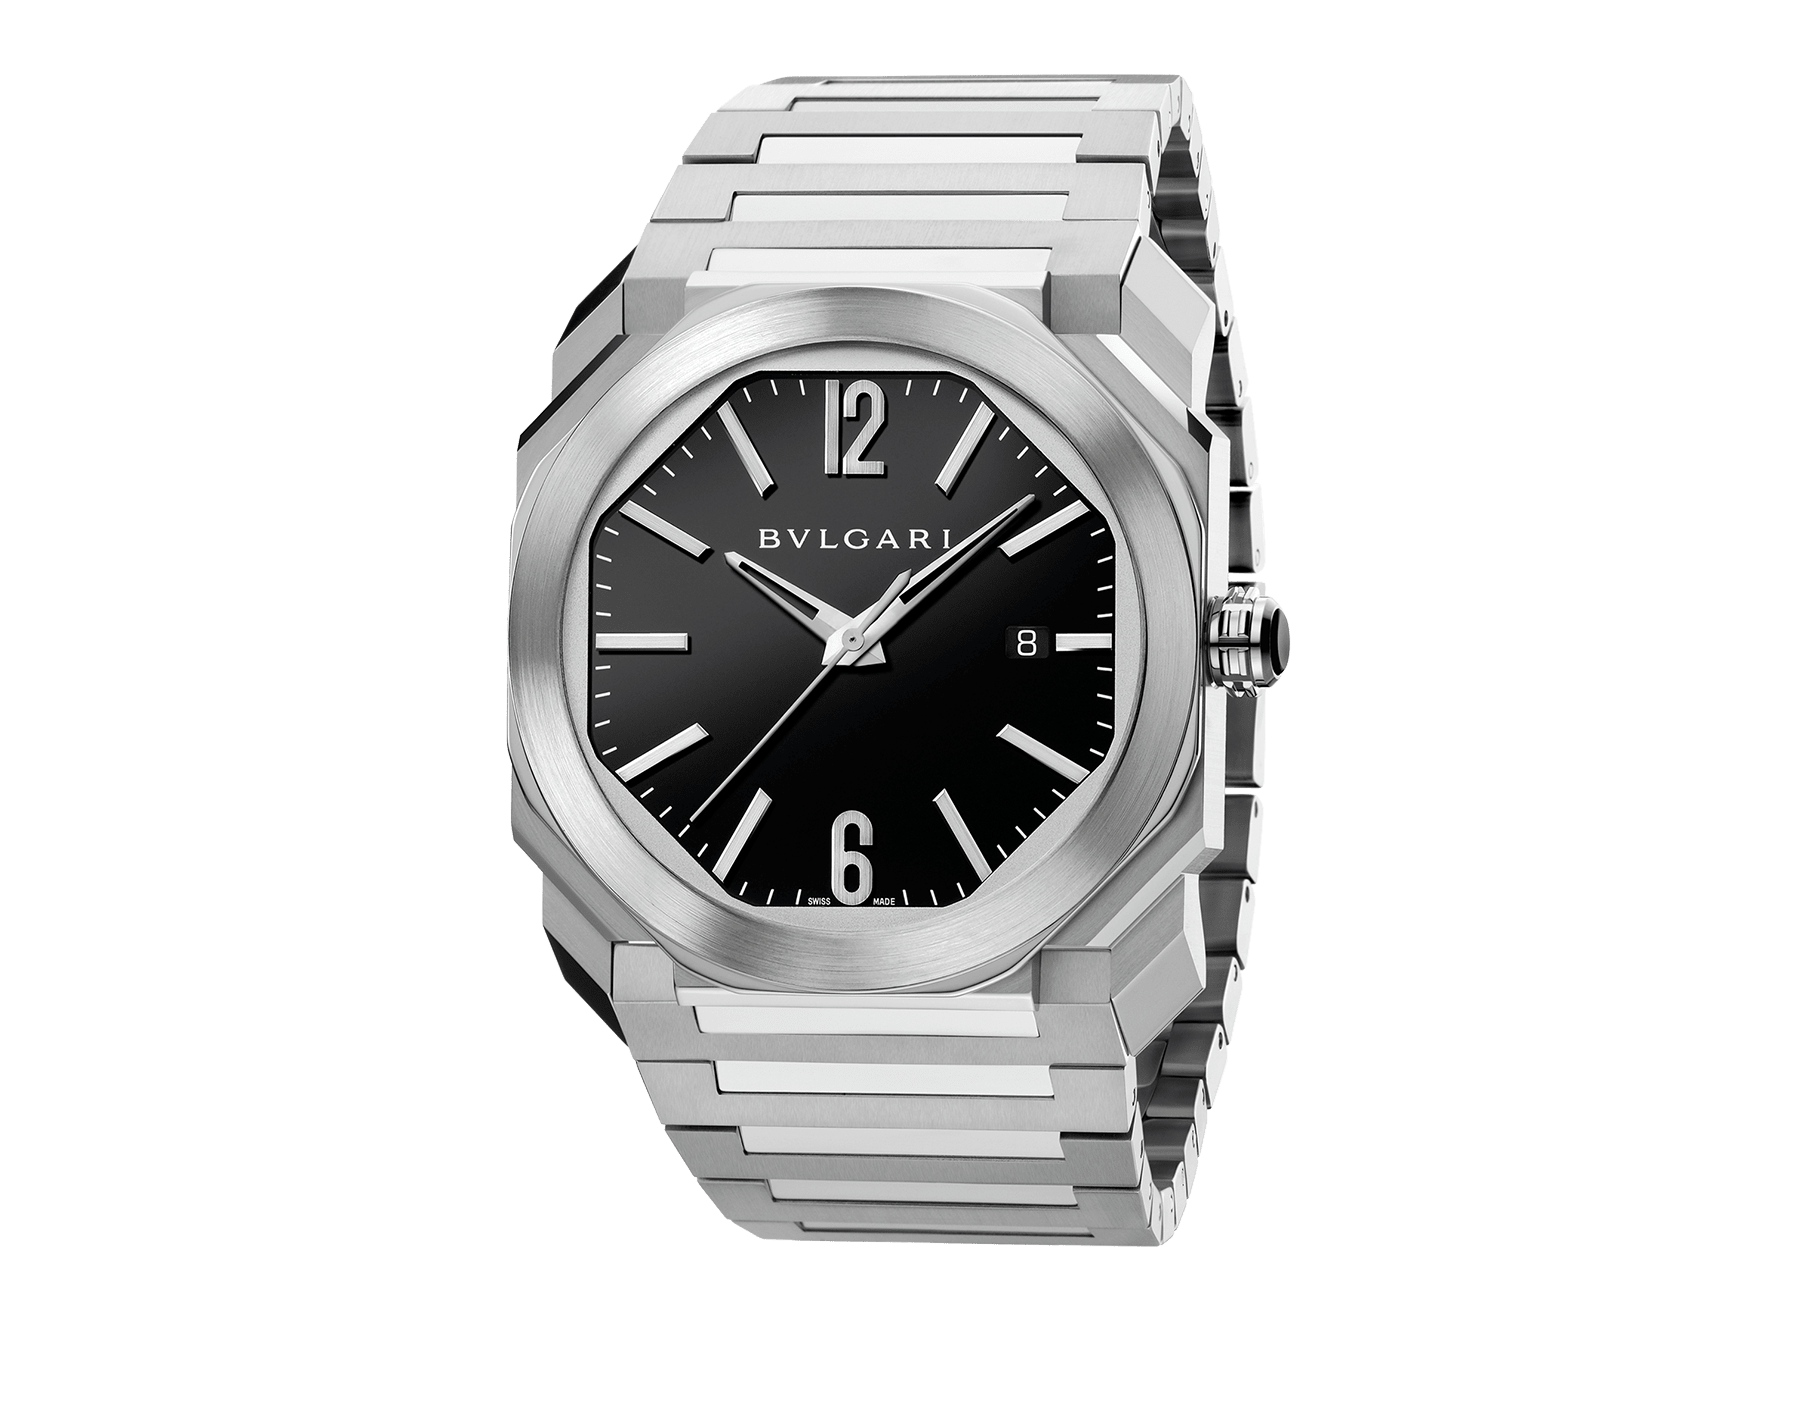 Octo watch with mechanical manufacture movement, automatic winding and date, stainless steel case and bracelet, black lacquered dial. 102031 image 1